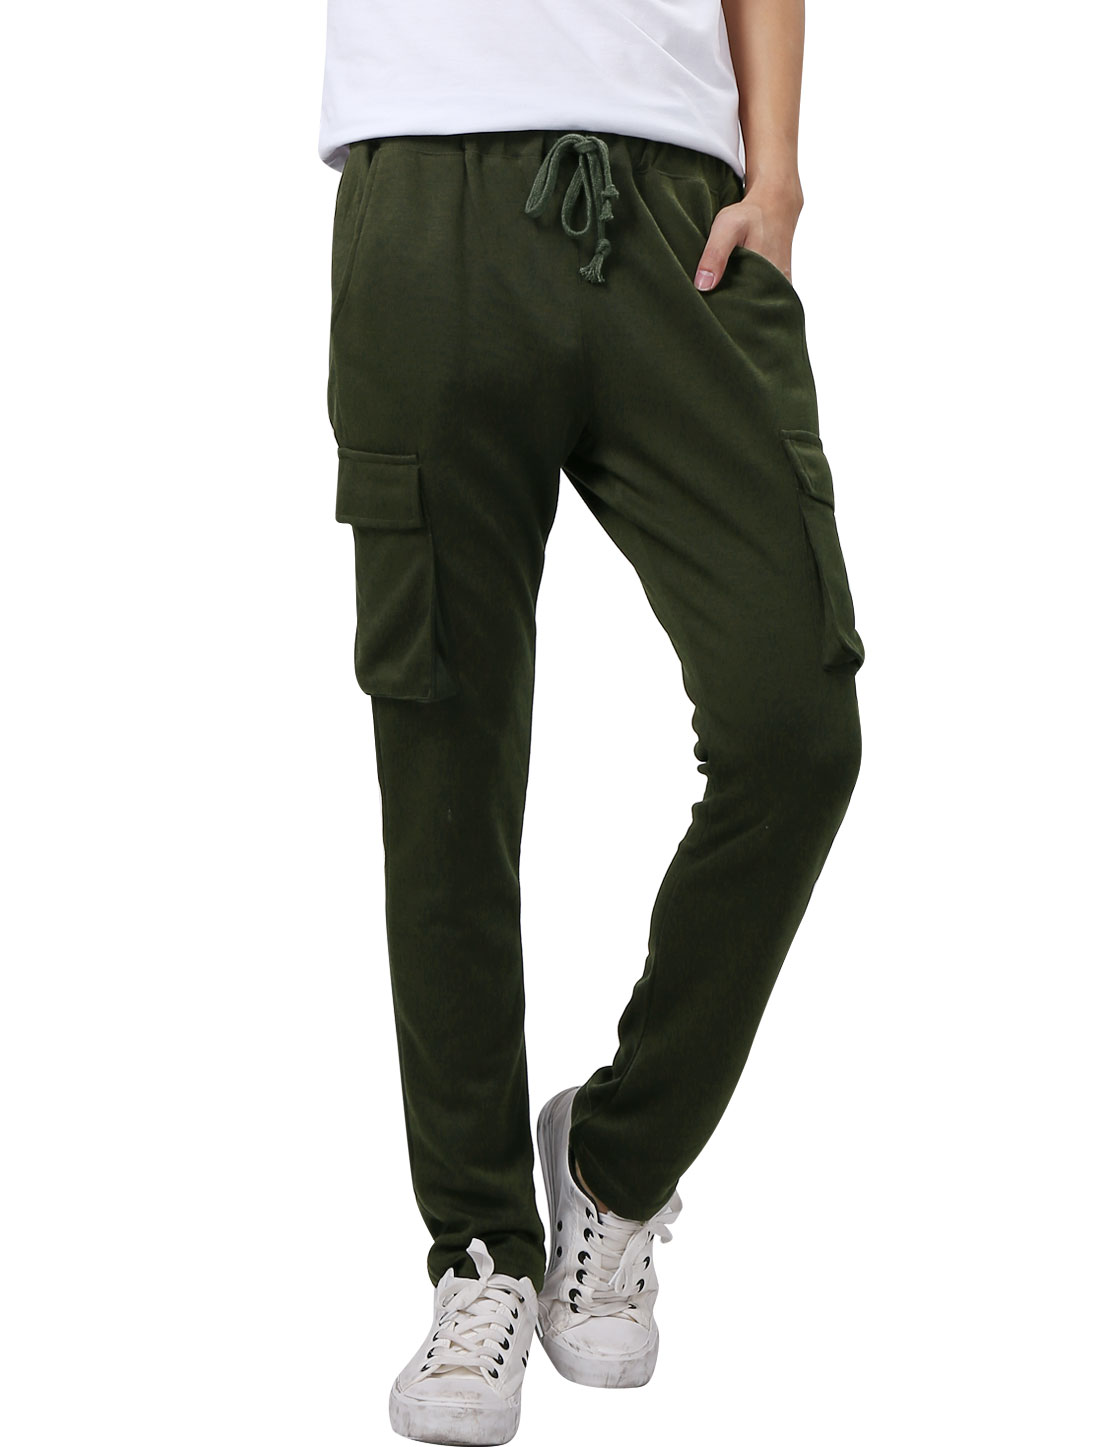 Men Drawstring Welt Hip Pockets Leisure Trousers Army Green W34